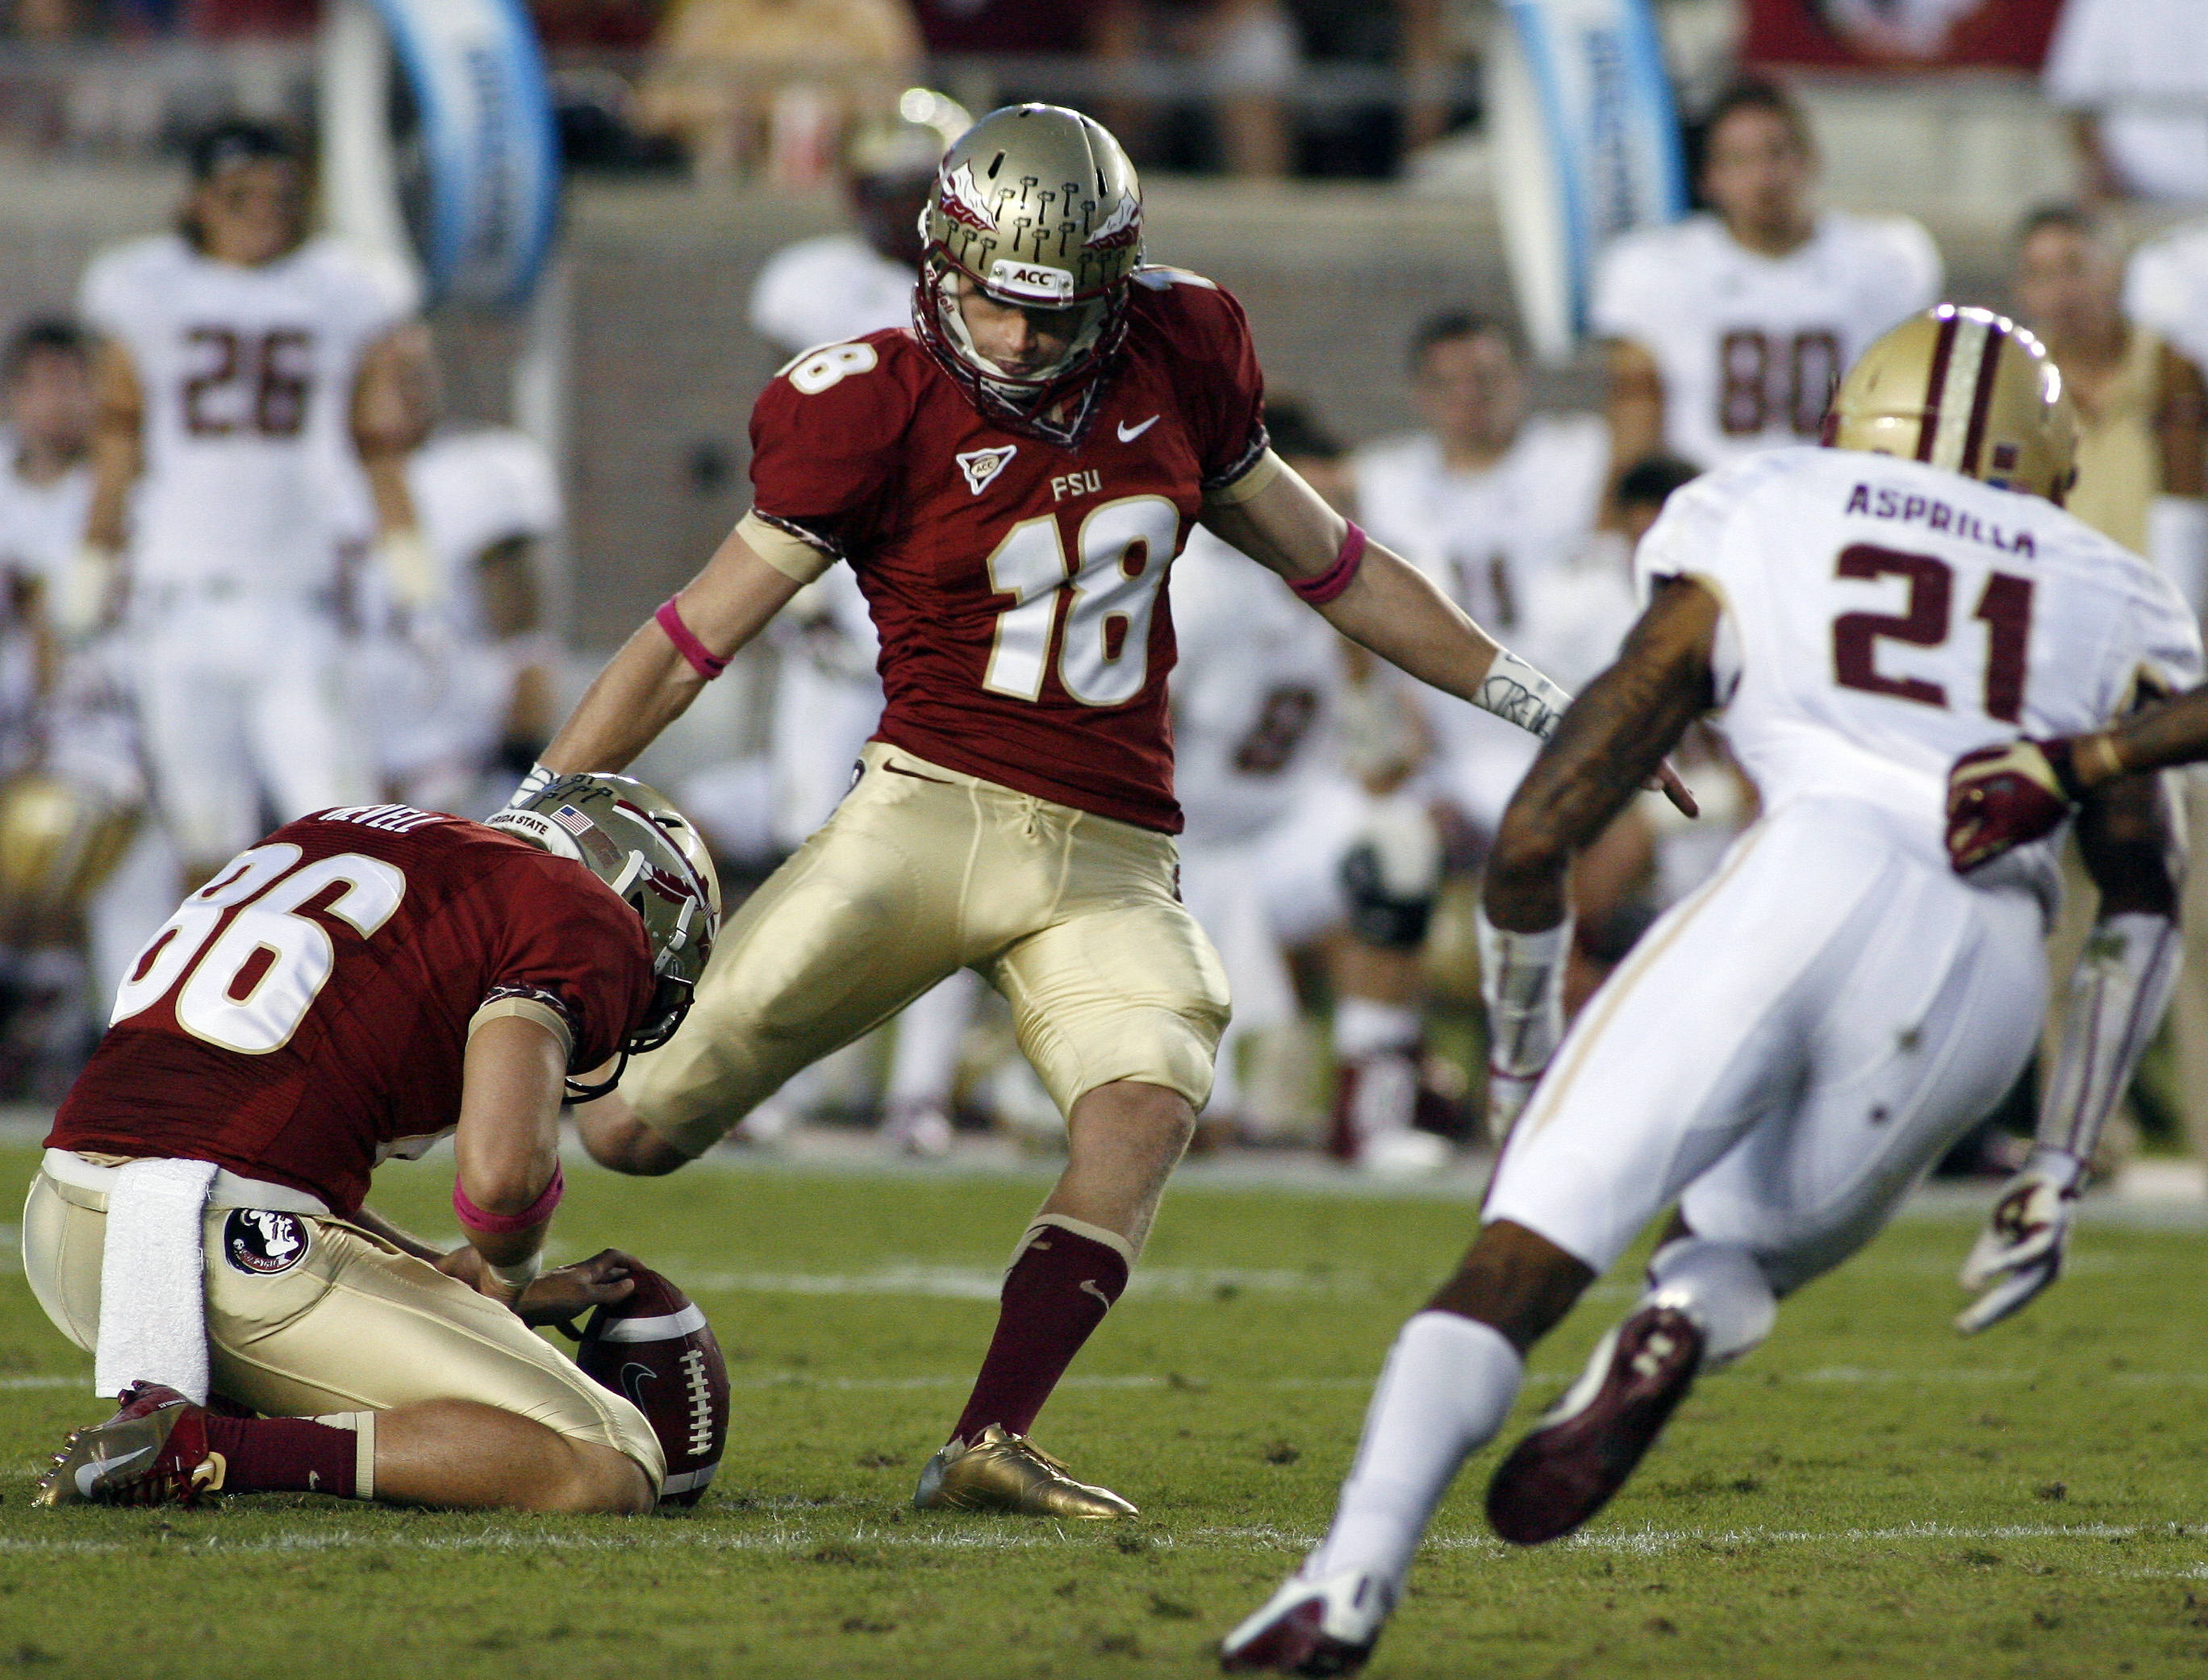 With Florida State holder Chris Revell (86) holding the ball, kicker Dustin Hopkins (18) makes a 51-yard field goal at the end of the second quarter. (AP Photo/Phil Sears)